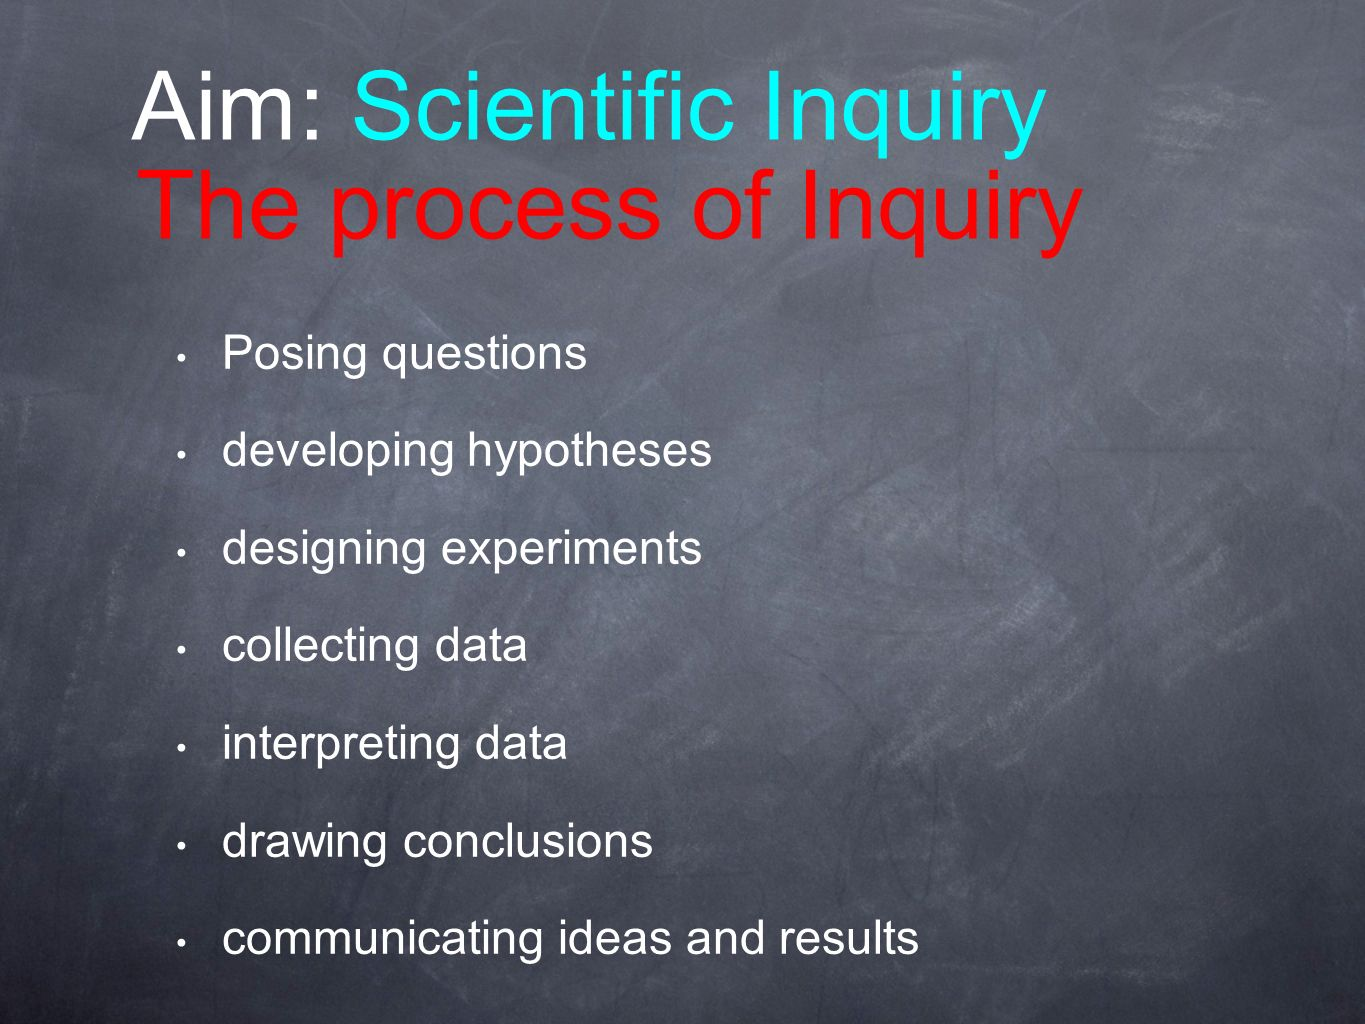 Aim: Scientific Inquiry